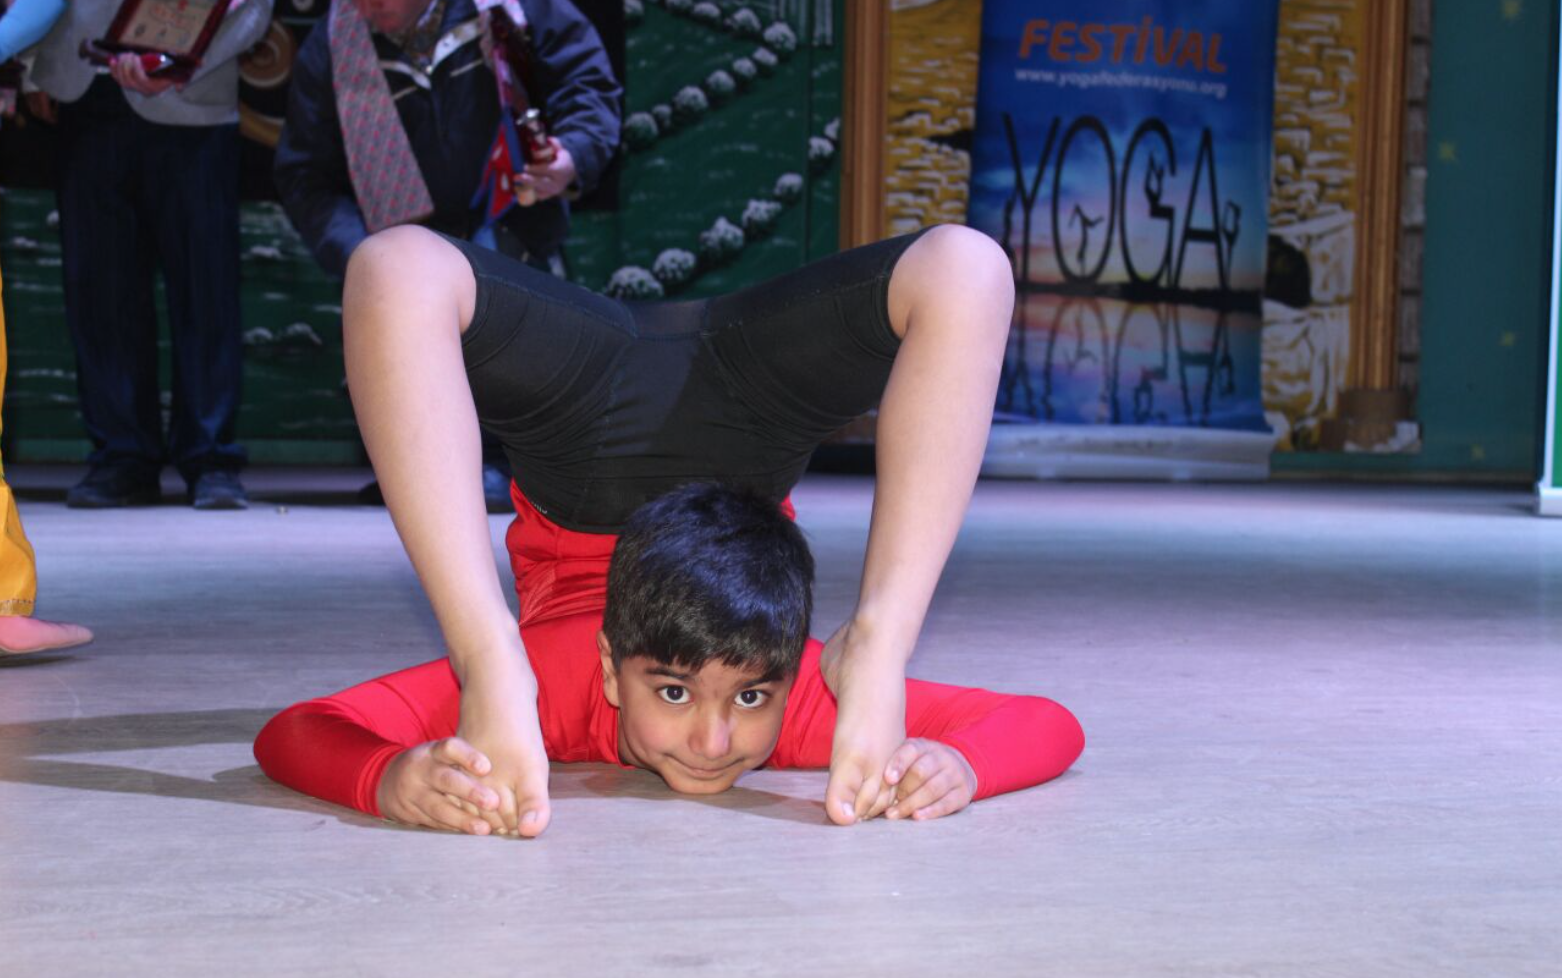 British Indian boy wins global Yoga contest